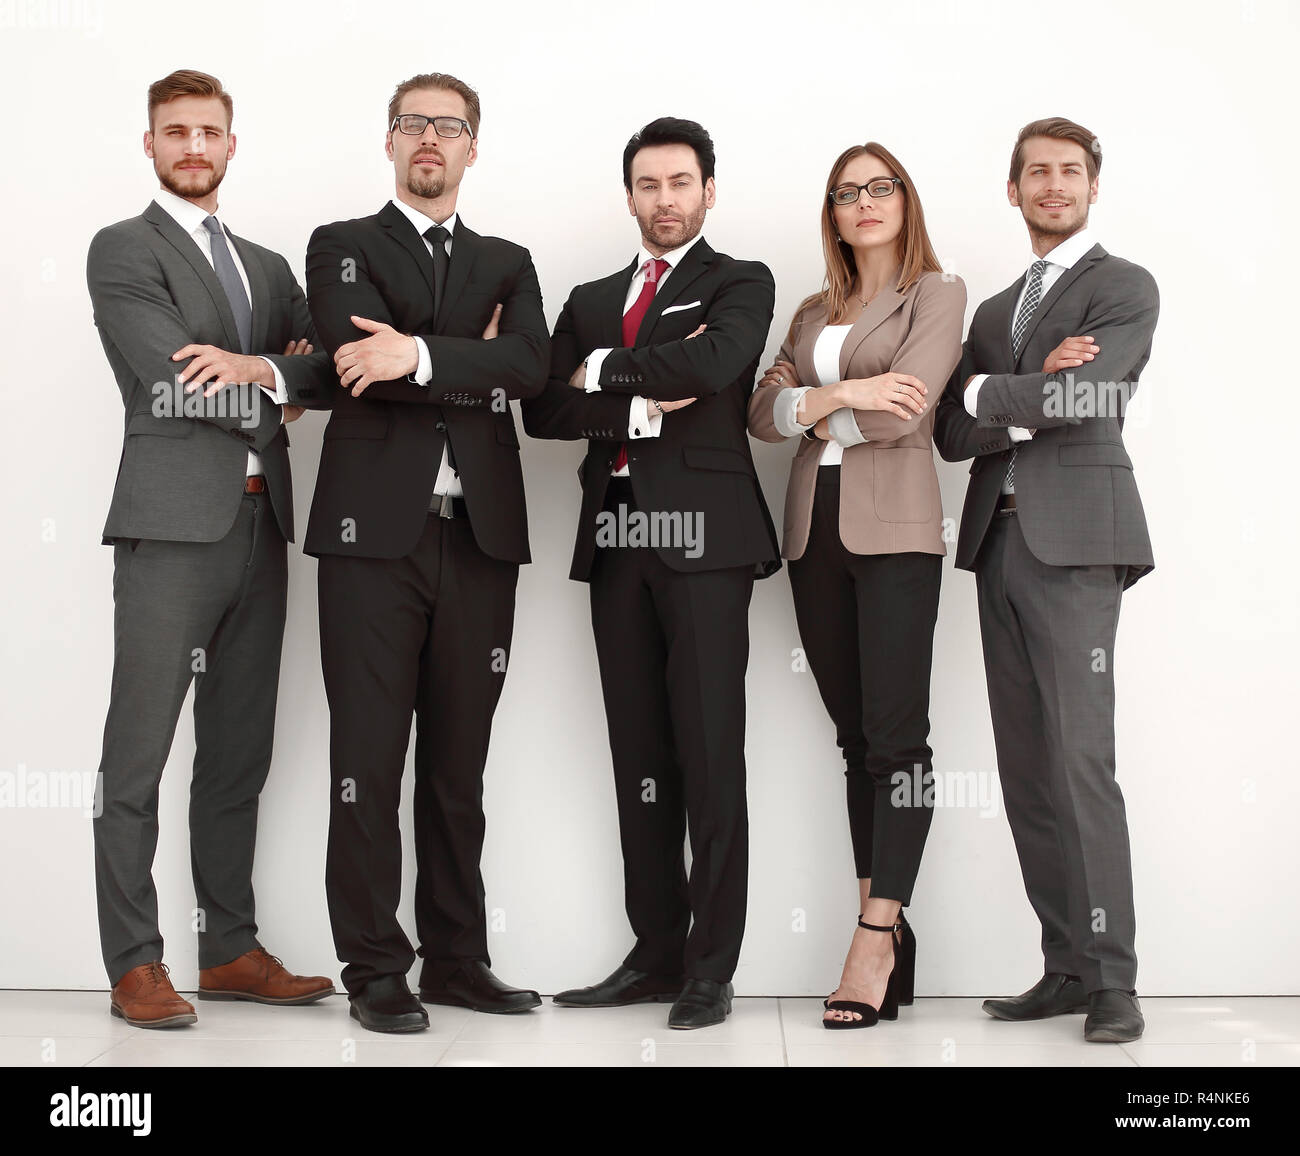 in full growth.a group of successful business people standing together - Stock Image